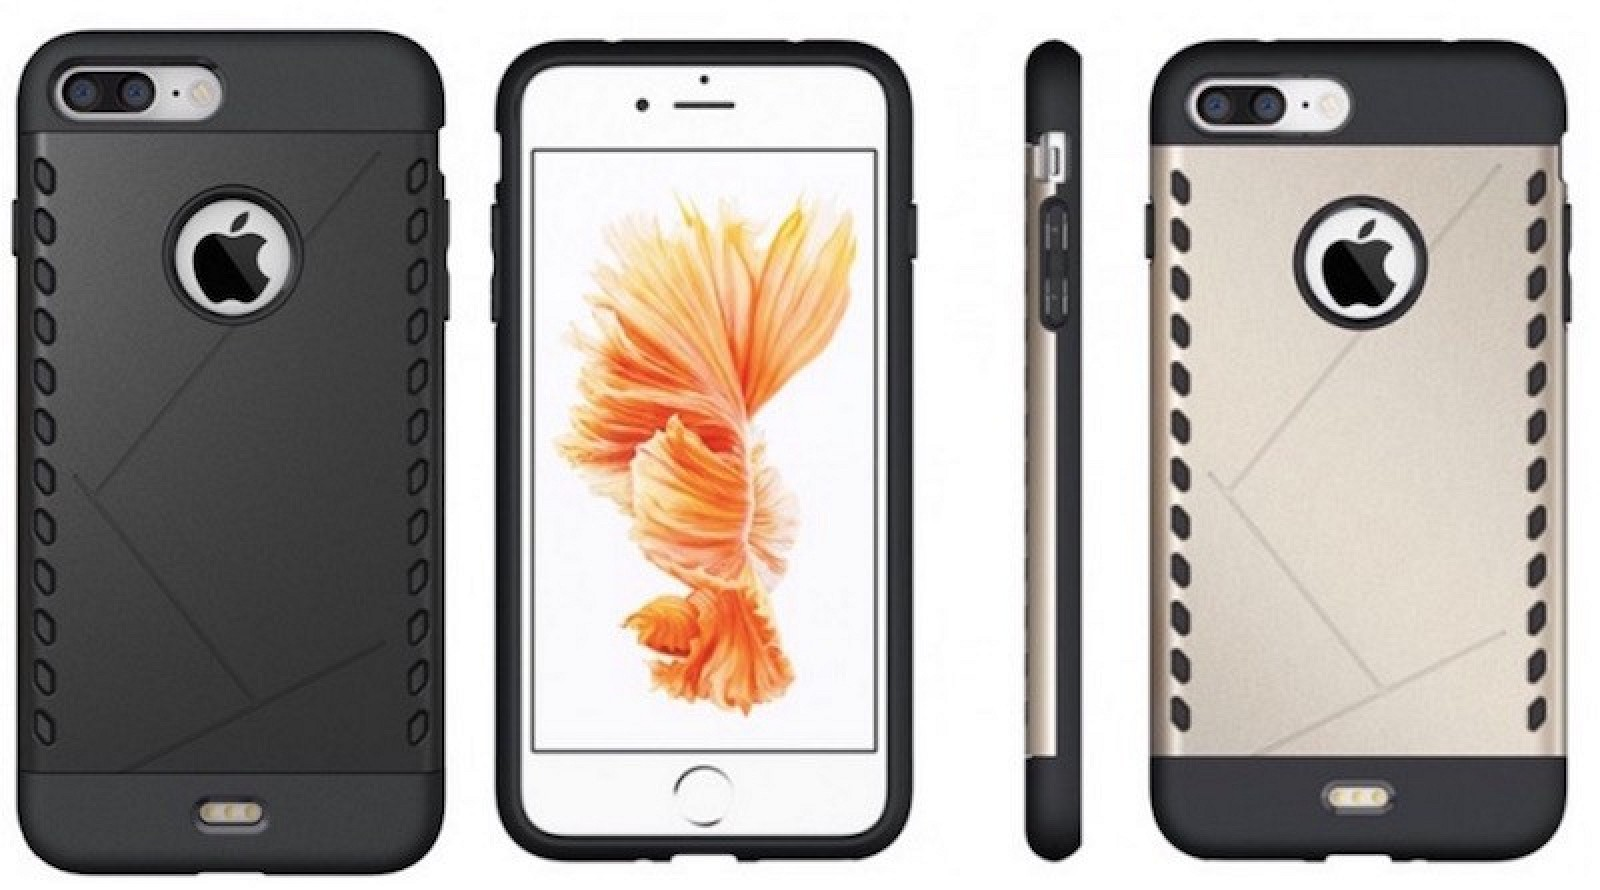 thirdparty iphone 7 plus cases continue debate over smart